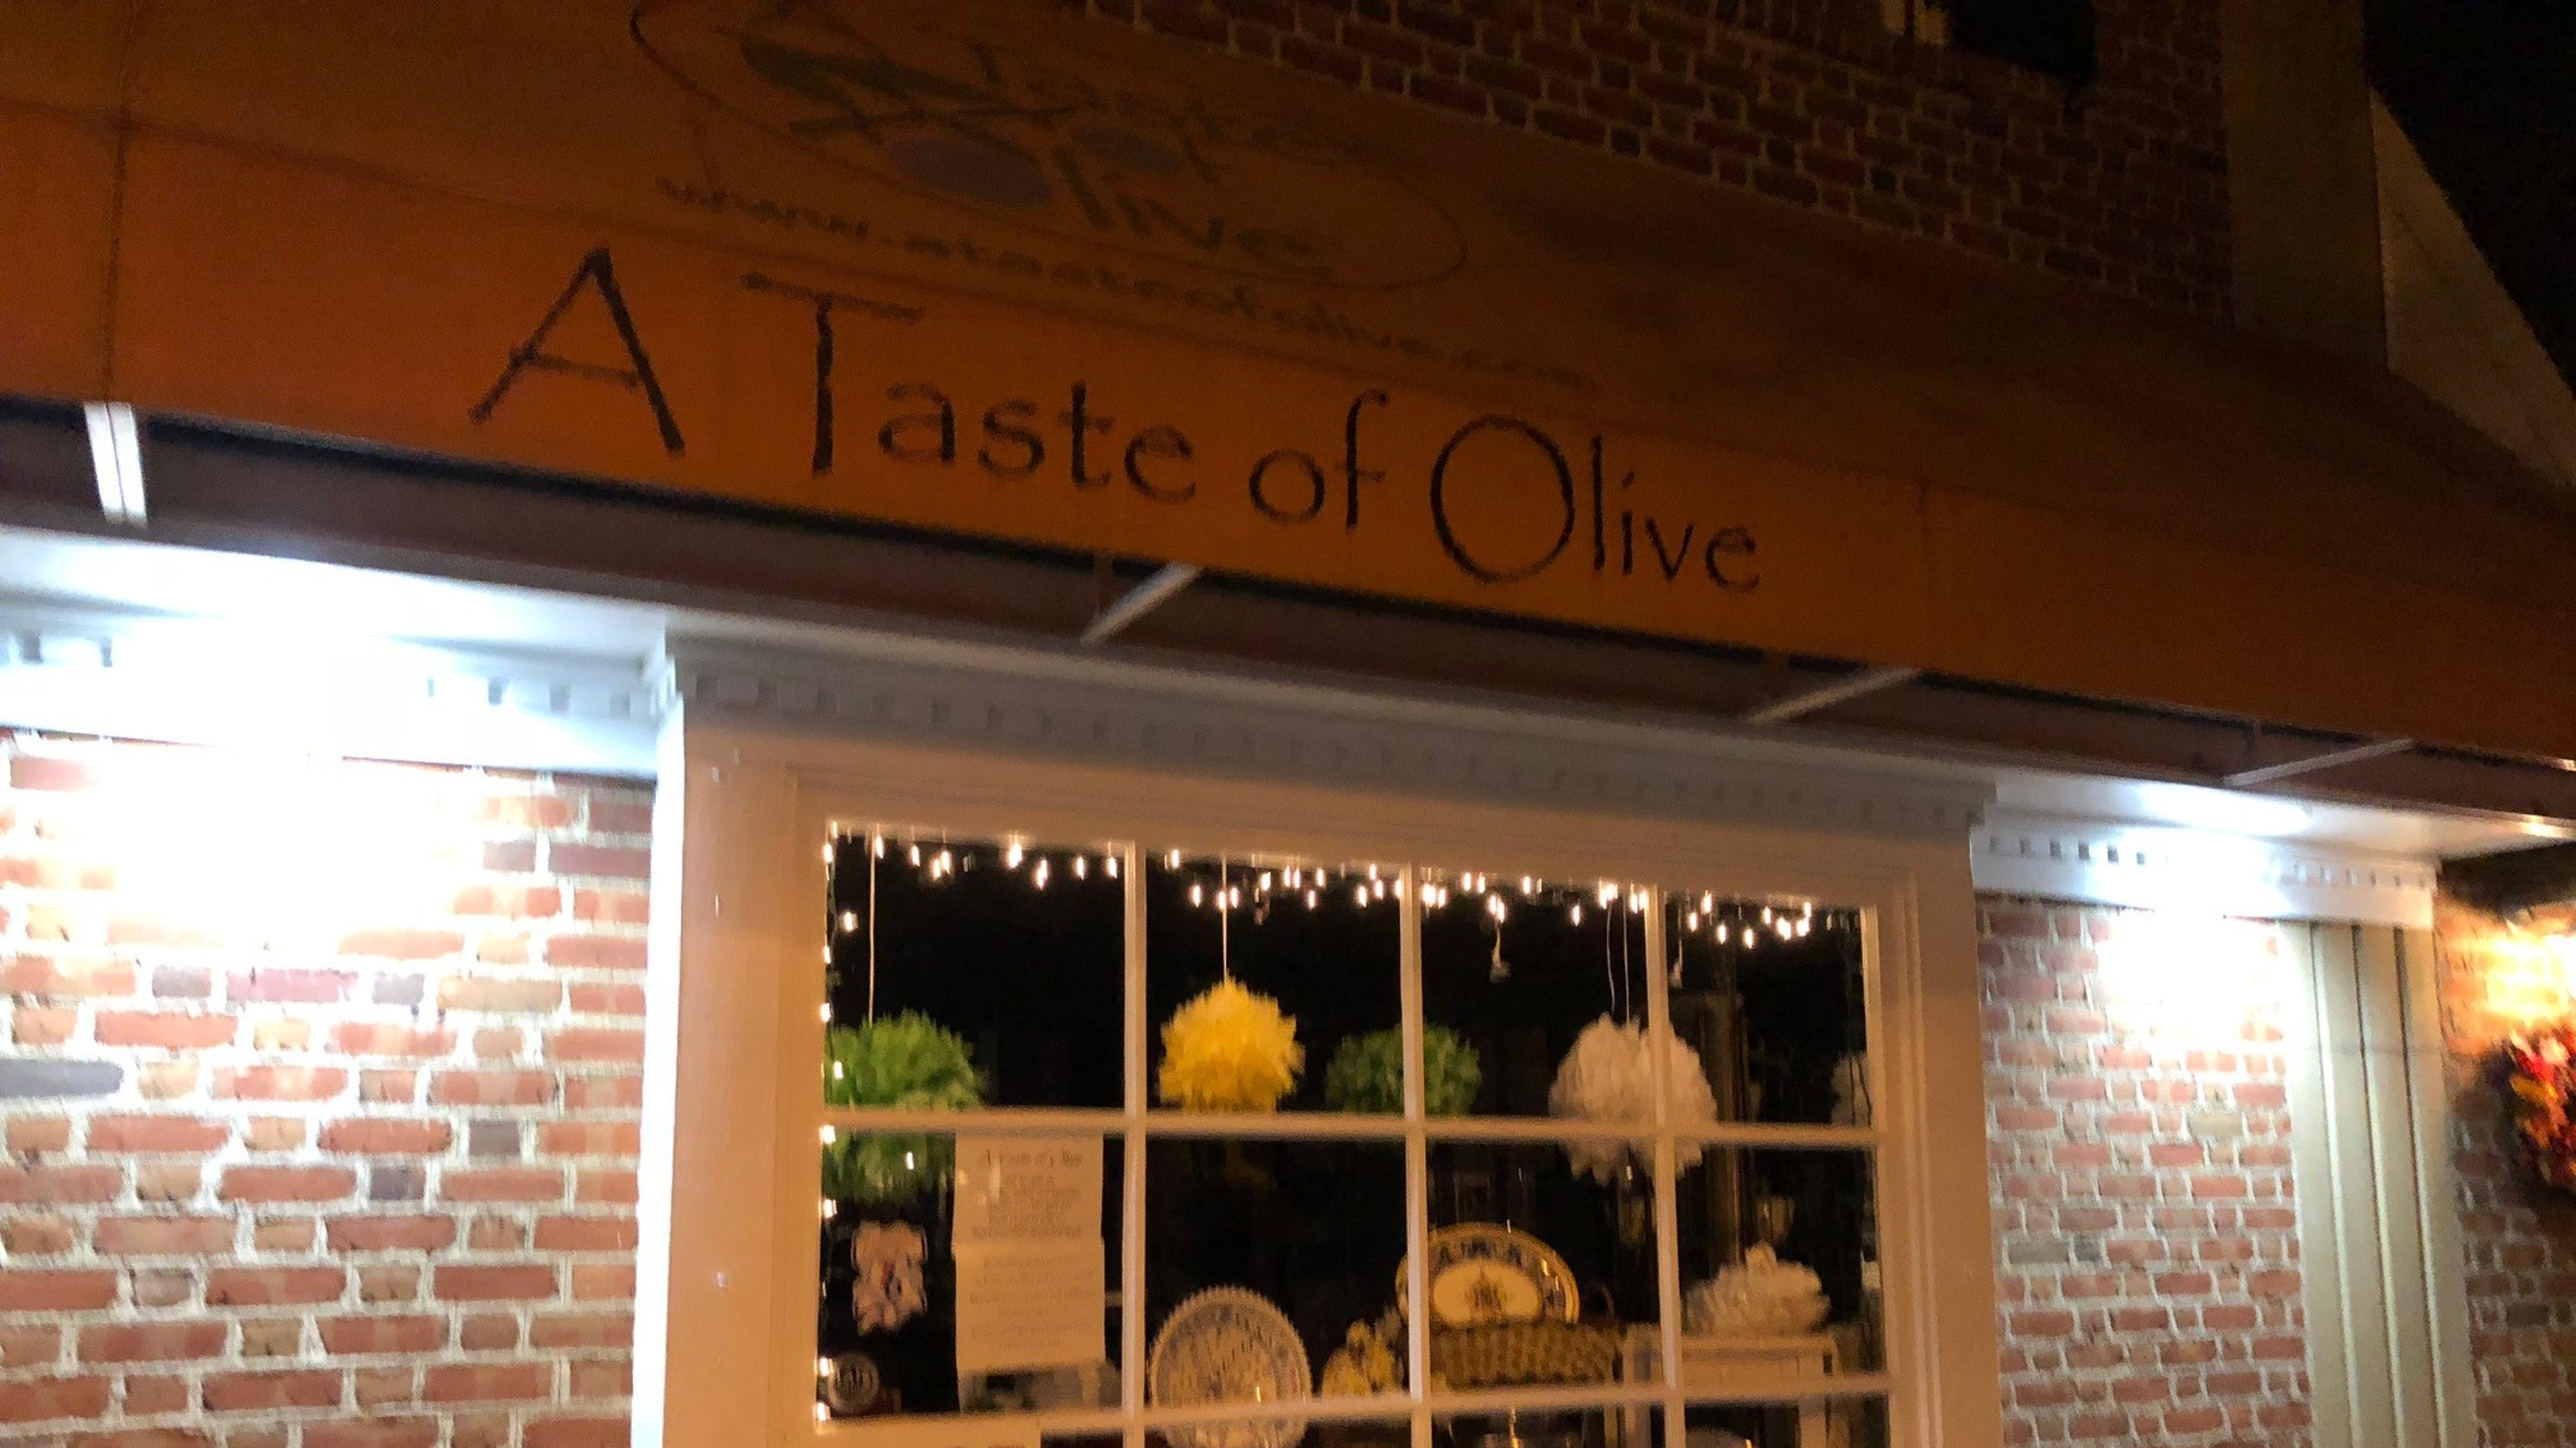 Haddonfield Nj Ping Taste Of Olive Out New S And Restaurants In